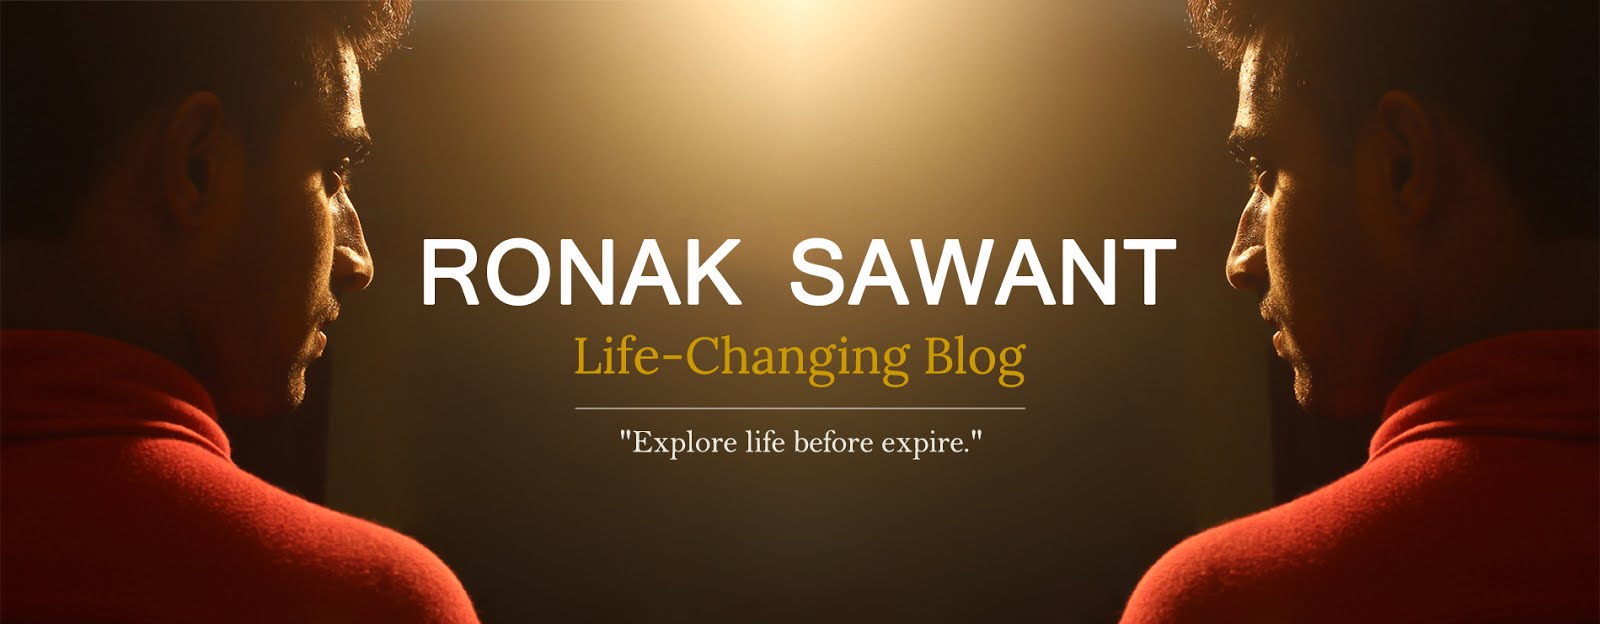 Ronak Sawant's Blog – Poetry, Writings, Inspiration & More